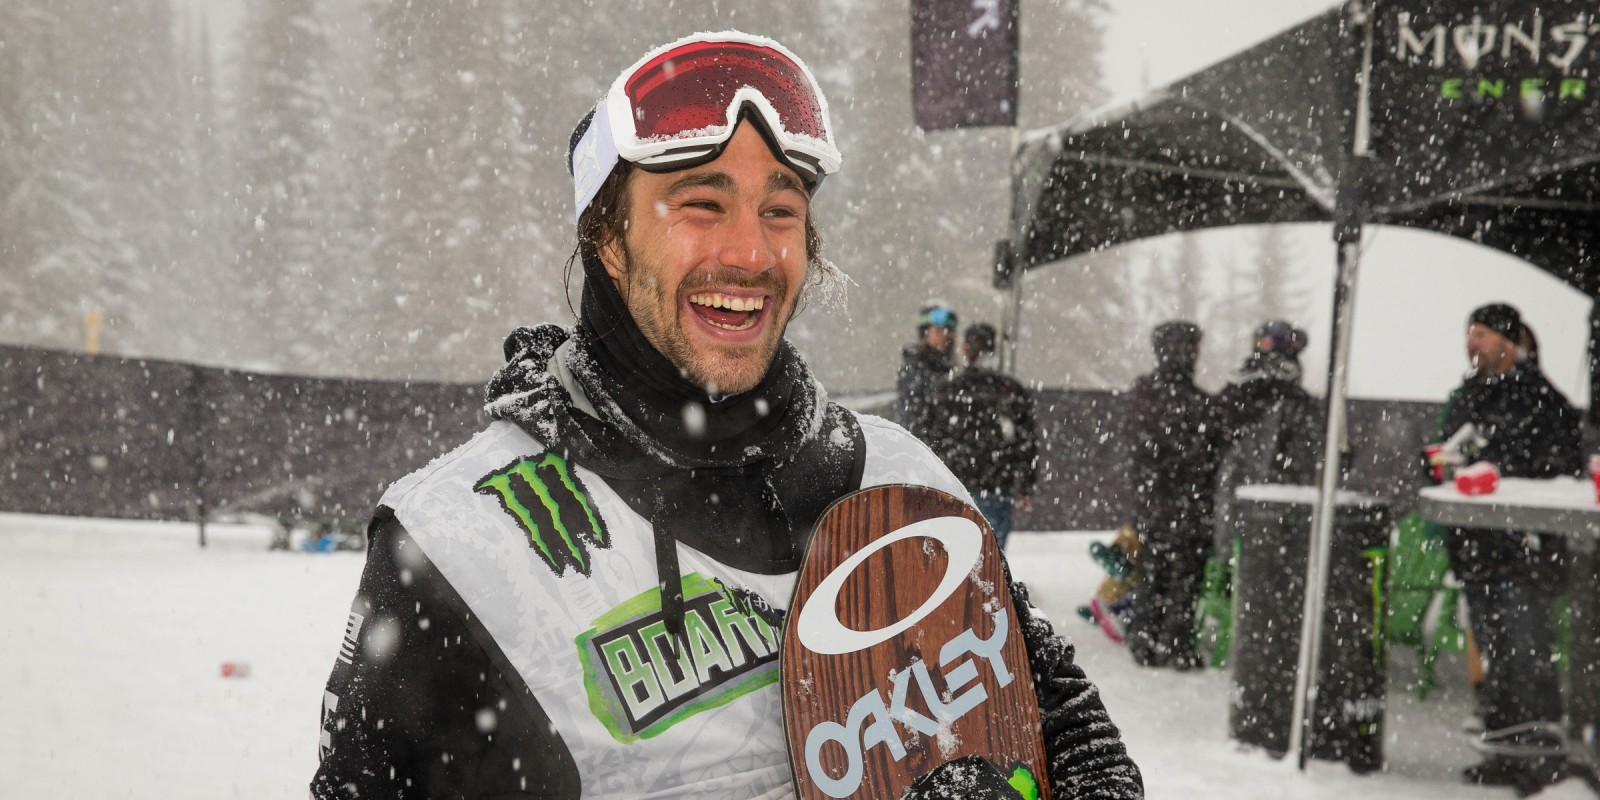 Action, Liefstyle and ambiance photos from the 2017 Boarderstyle event in Silverstar, BC